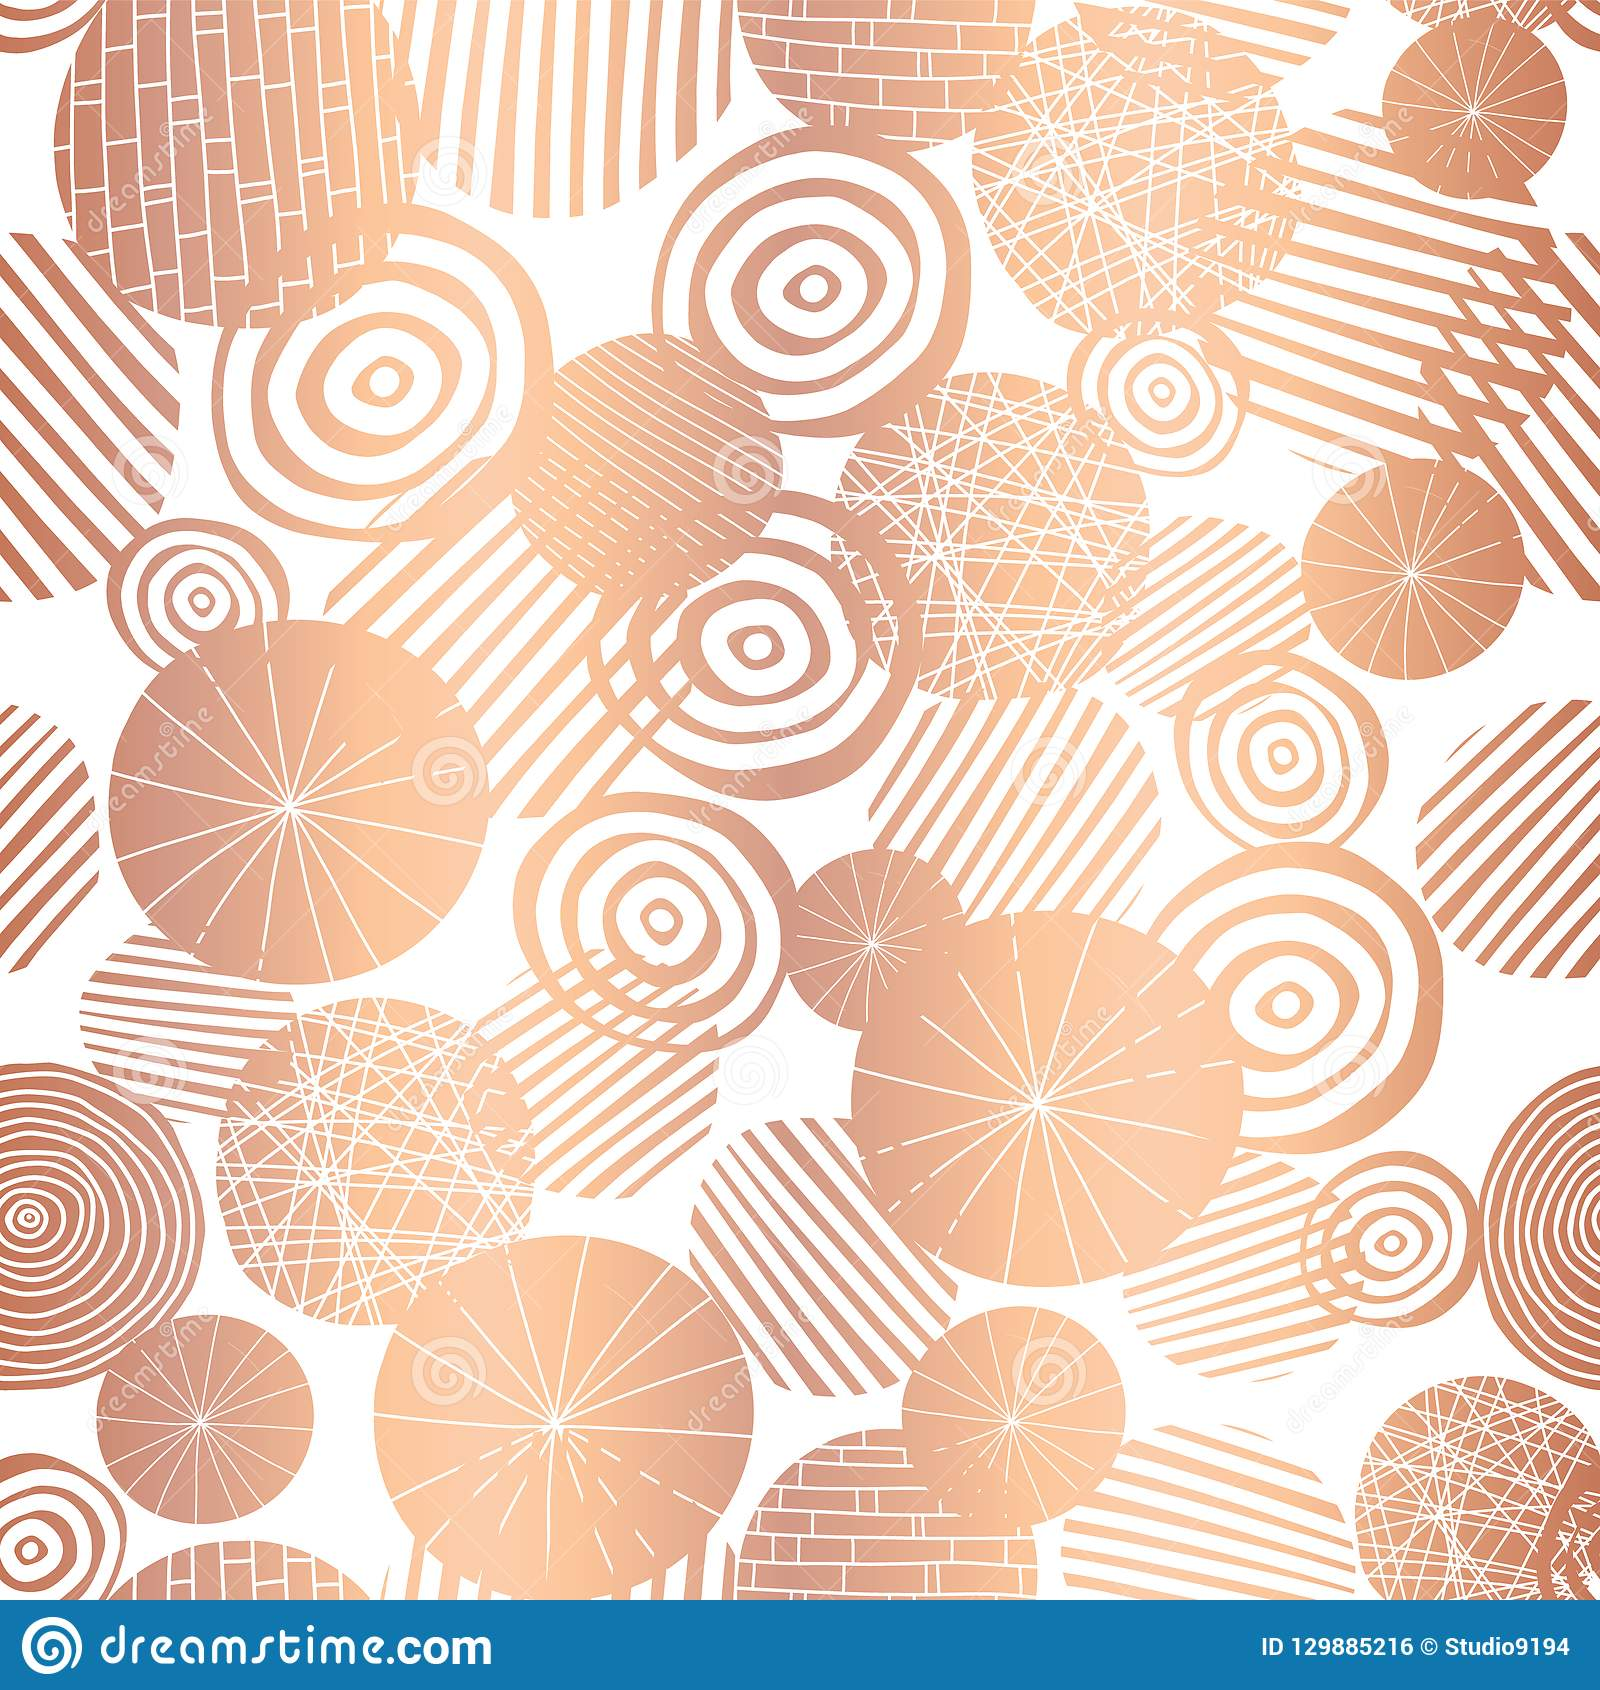 2a2a2a6d27a0 Copper rose gold foil textured circle shapes seamless vector pattern. Shiny  metallic abstract circles on